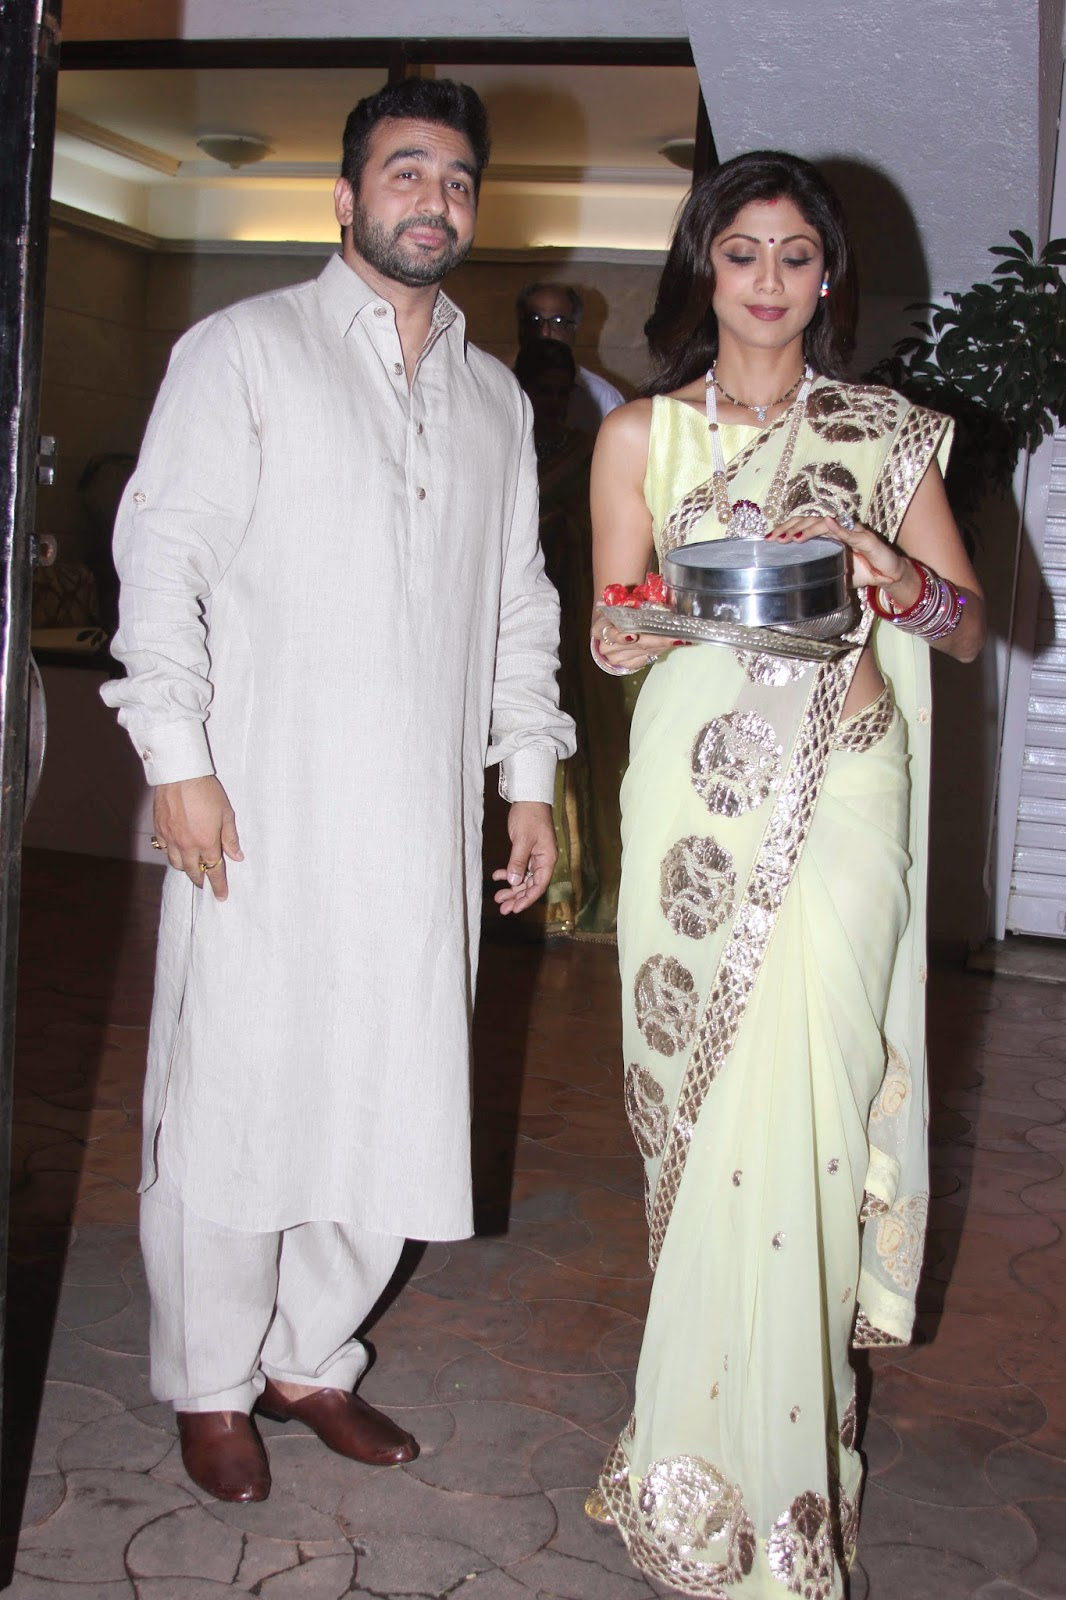 Shilpa Shetty and Sridevi celebrate Karwa Chauth Festival